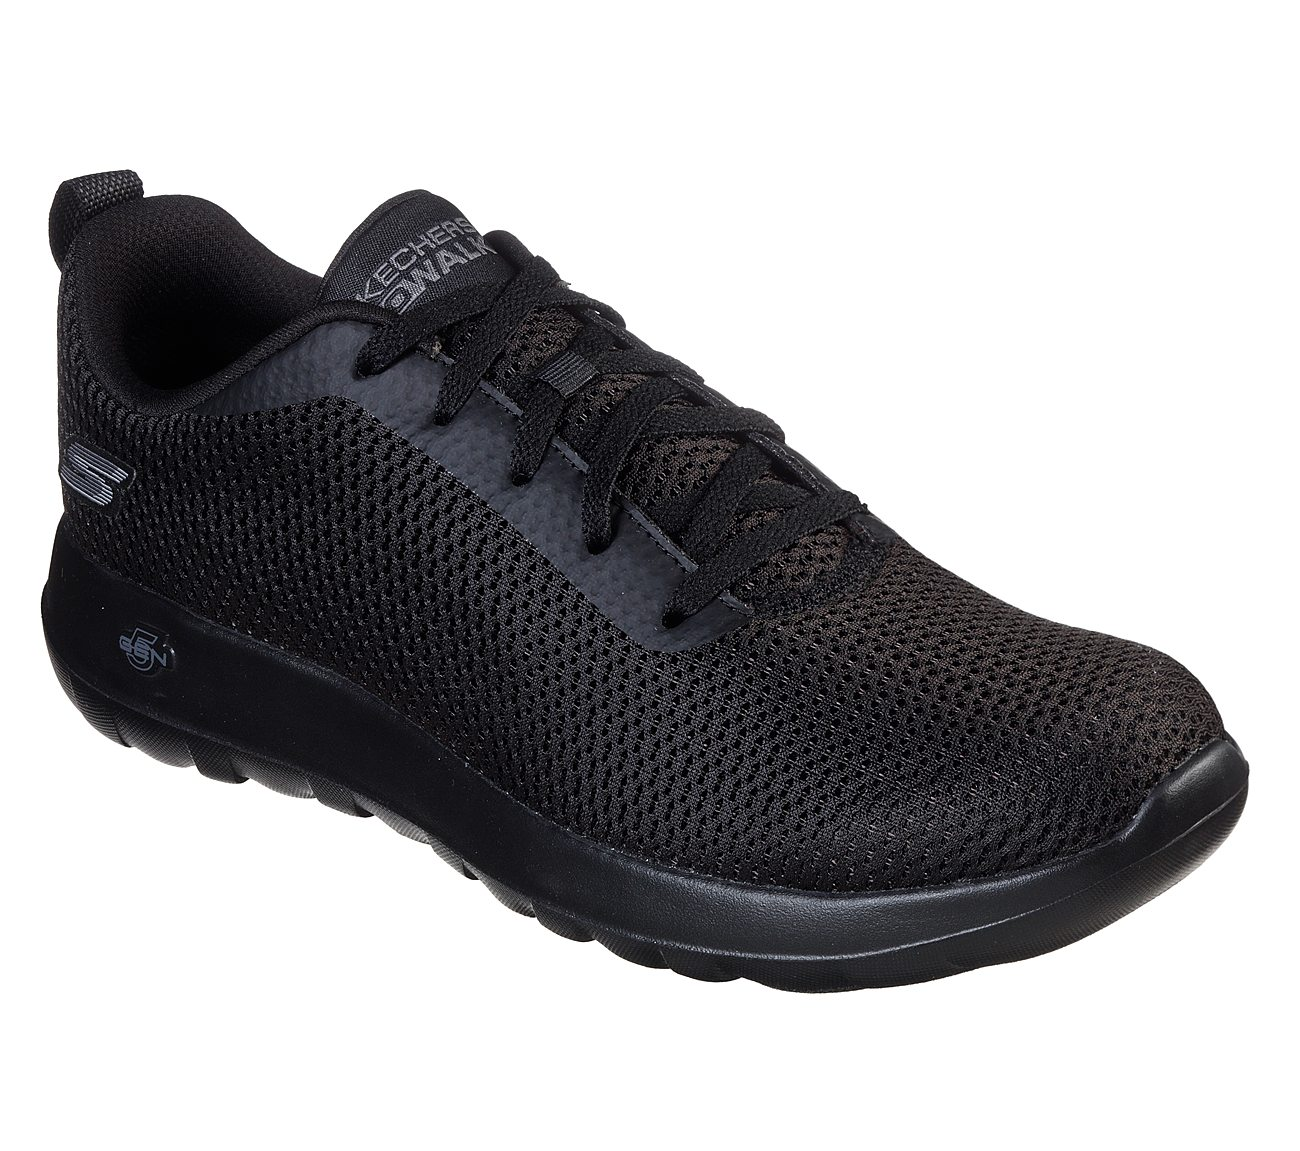 d06ad05b97ab Buy SKECHERS Skechers GOwalk Max Skechers Performance Shoes only  60.00